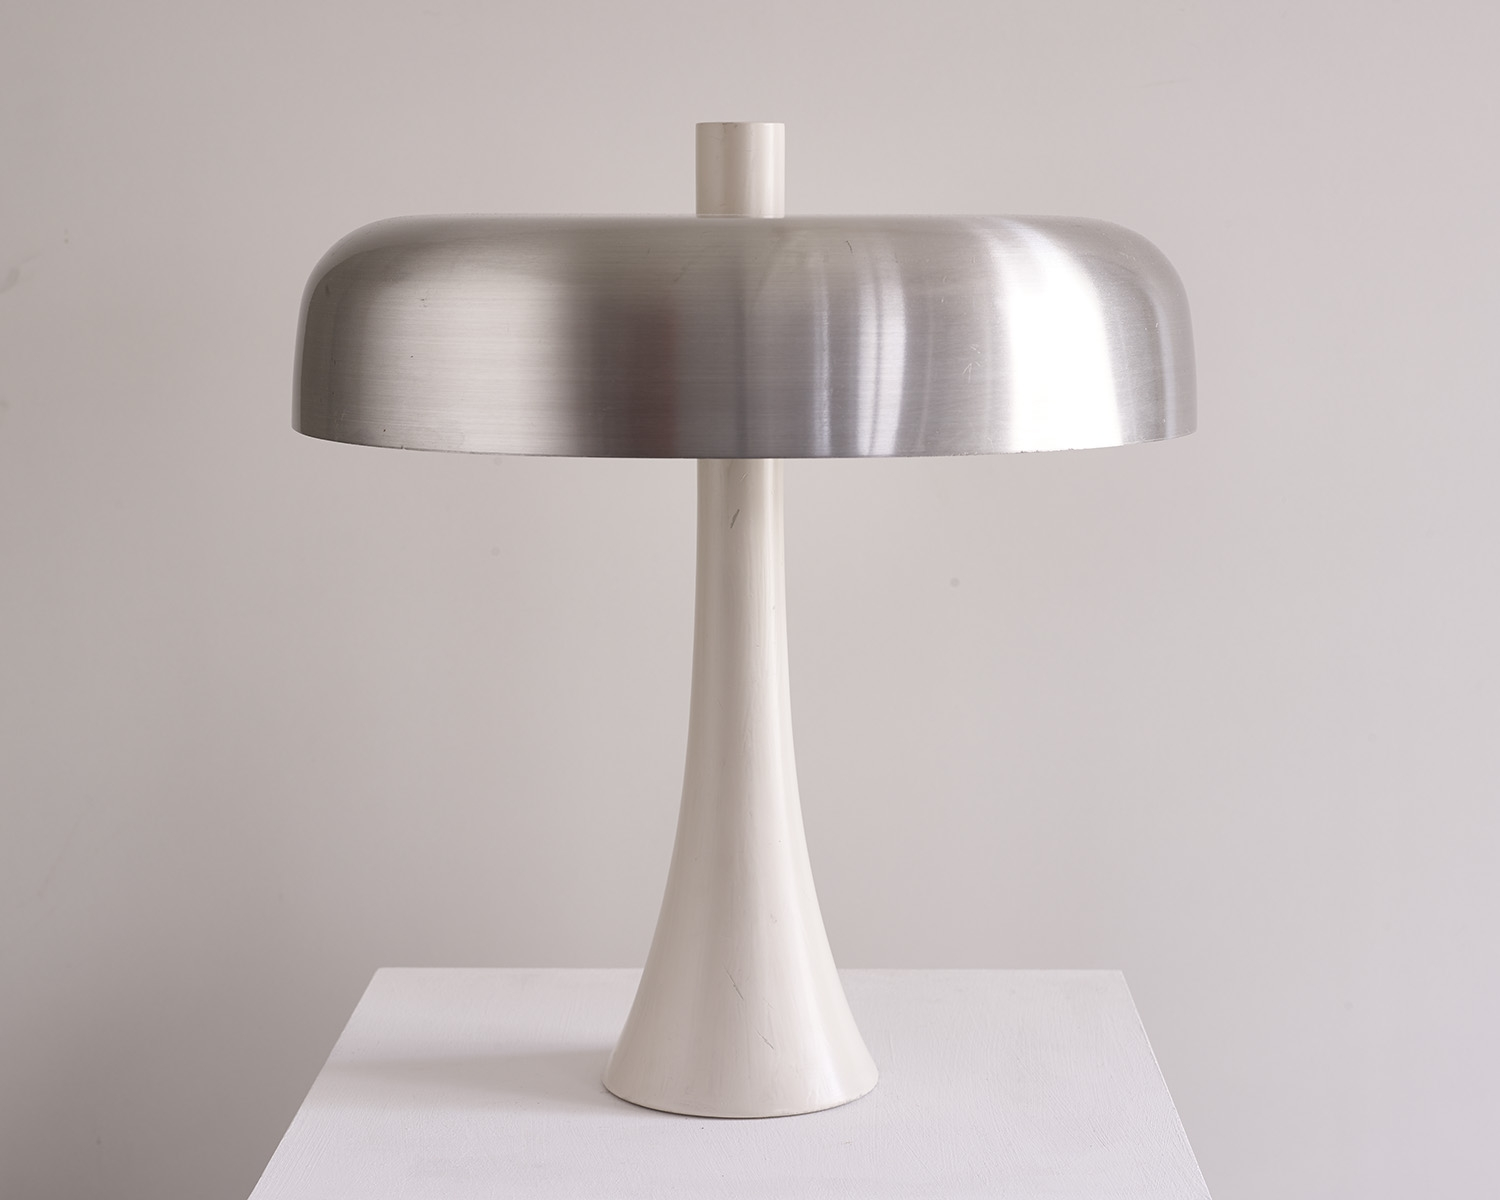 chrome-table-lamp-1970-image-01